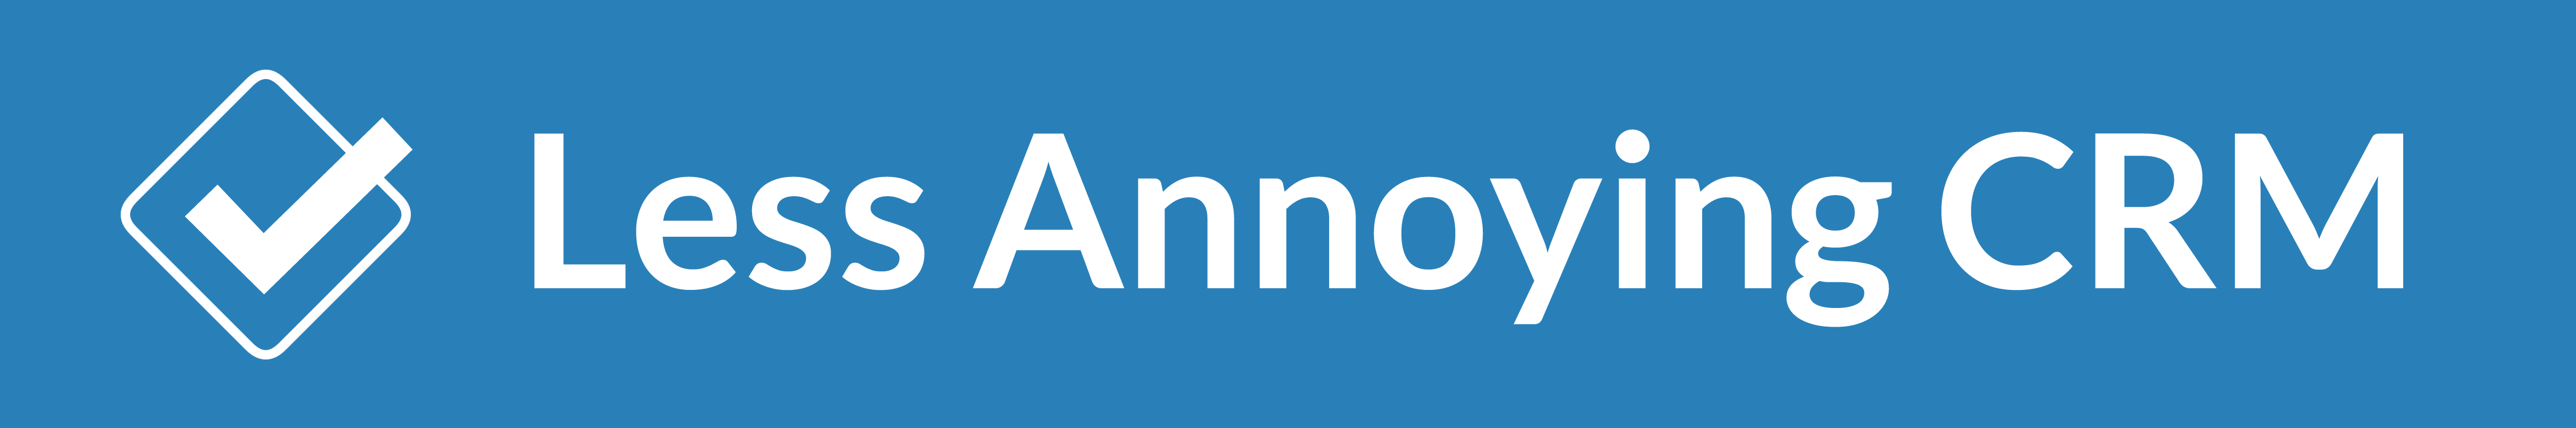 Less Anoying CRM logo